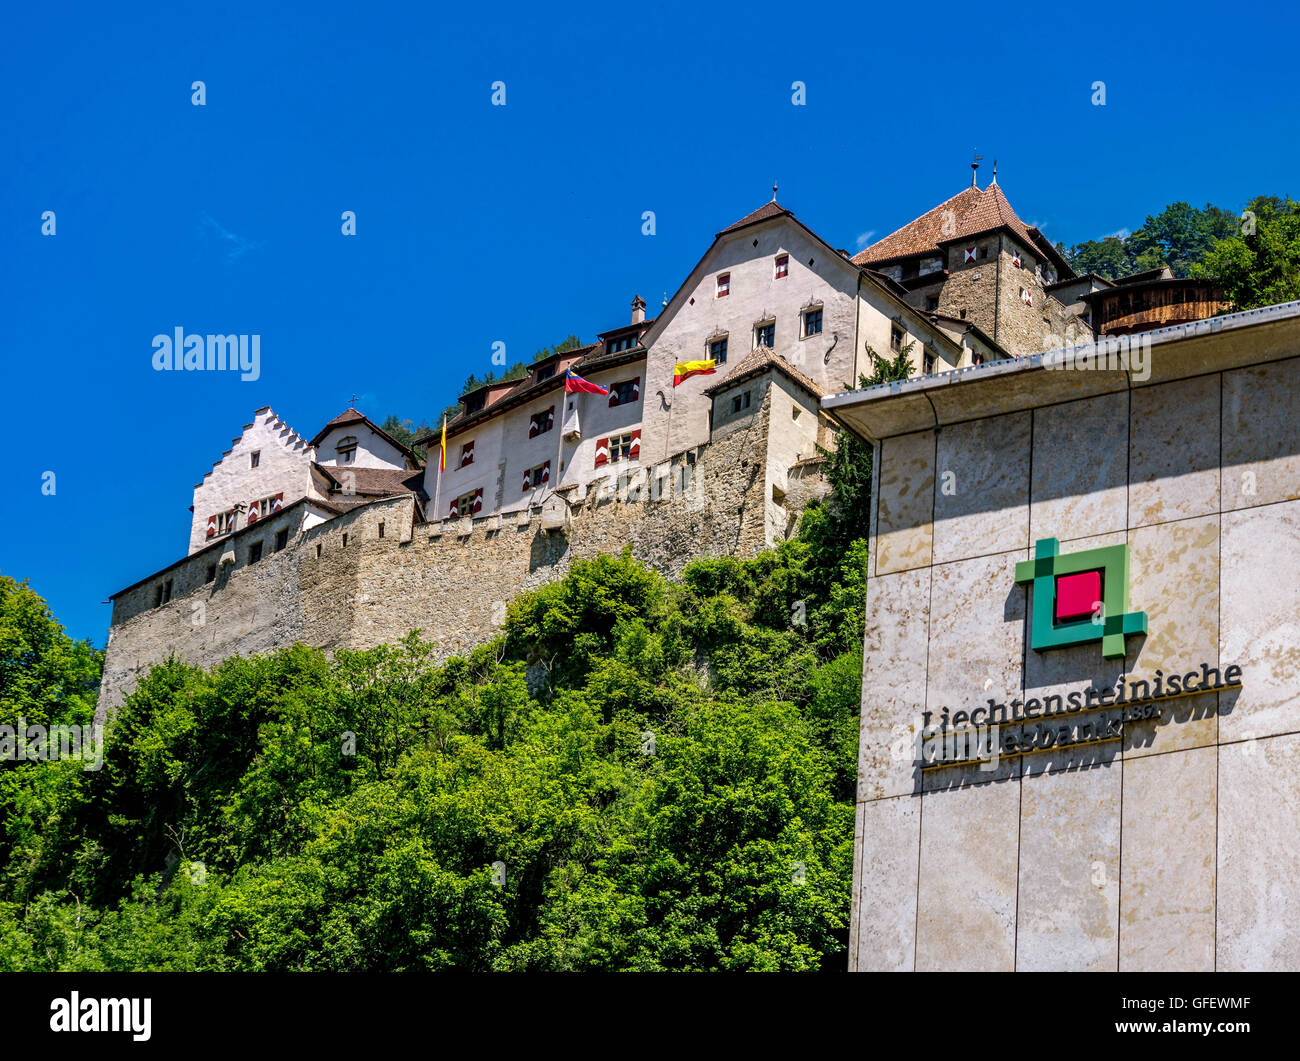 Bank building of Liechtensteinische Landesbank in front of the castle of Vaduz, Principality of Liechtenstein, Europe - Stock Image